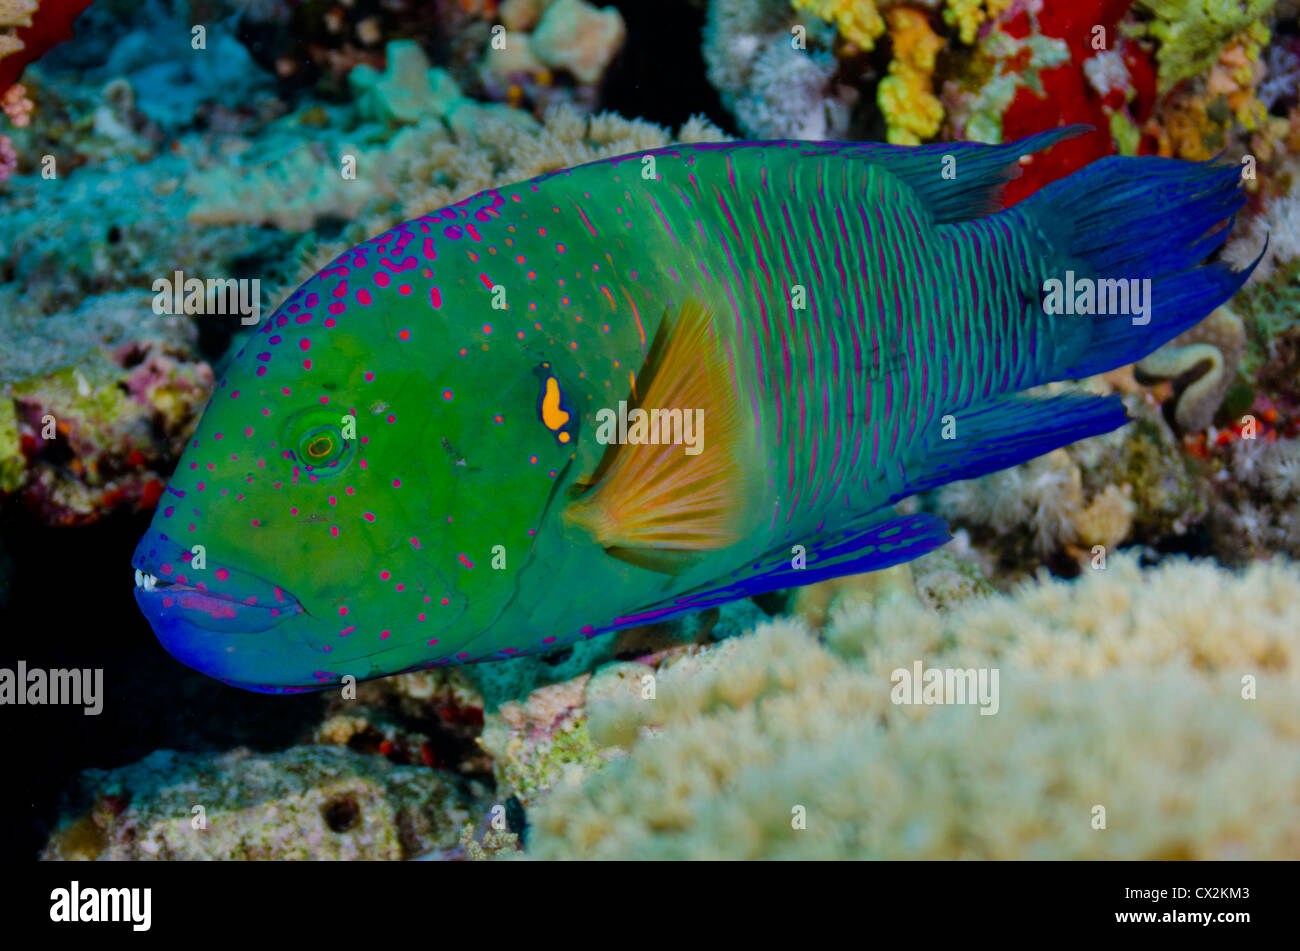 Red Sea, underwater, coral reef, sea life, marine life, ocean, scuba diving, vacation, water, fish, wrass fish, - Stock Image